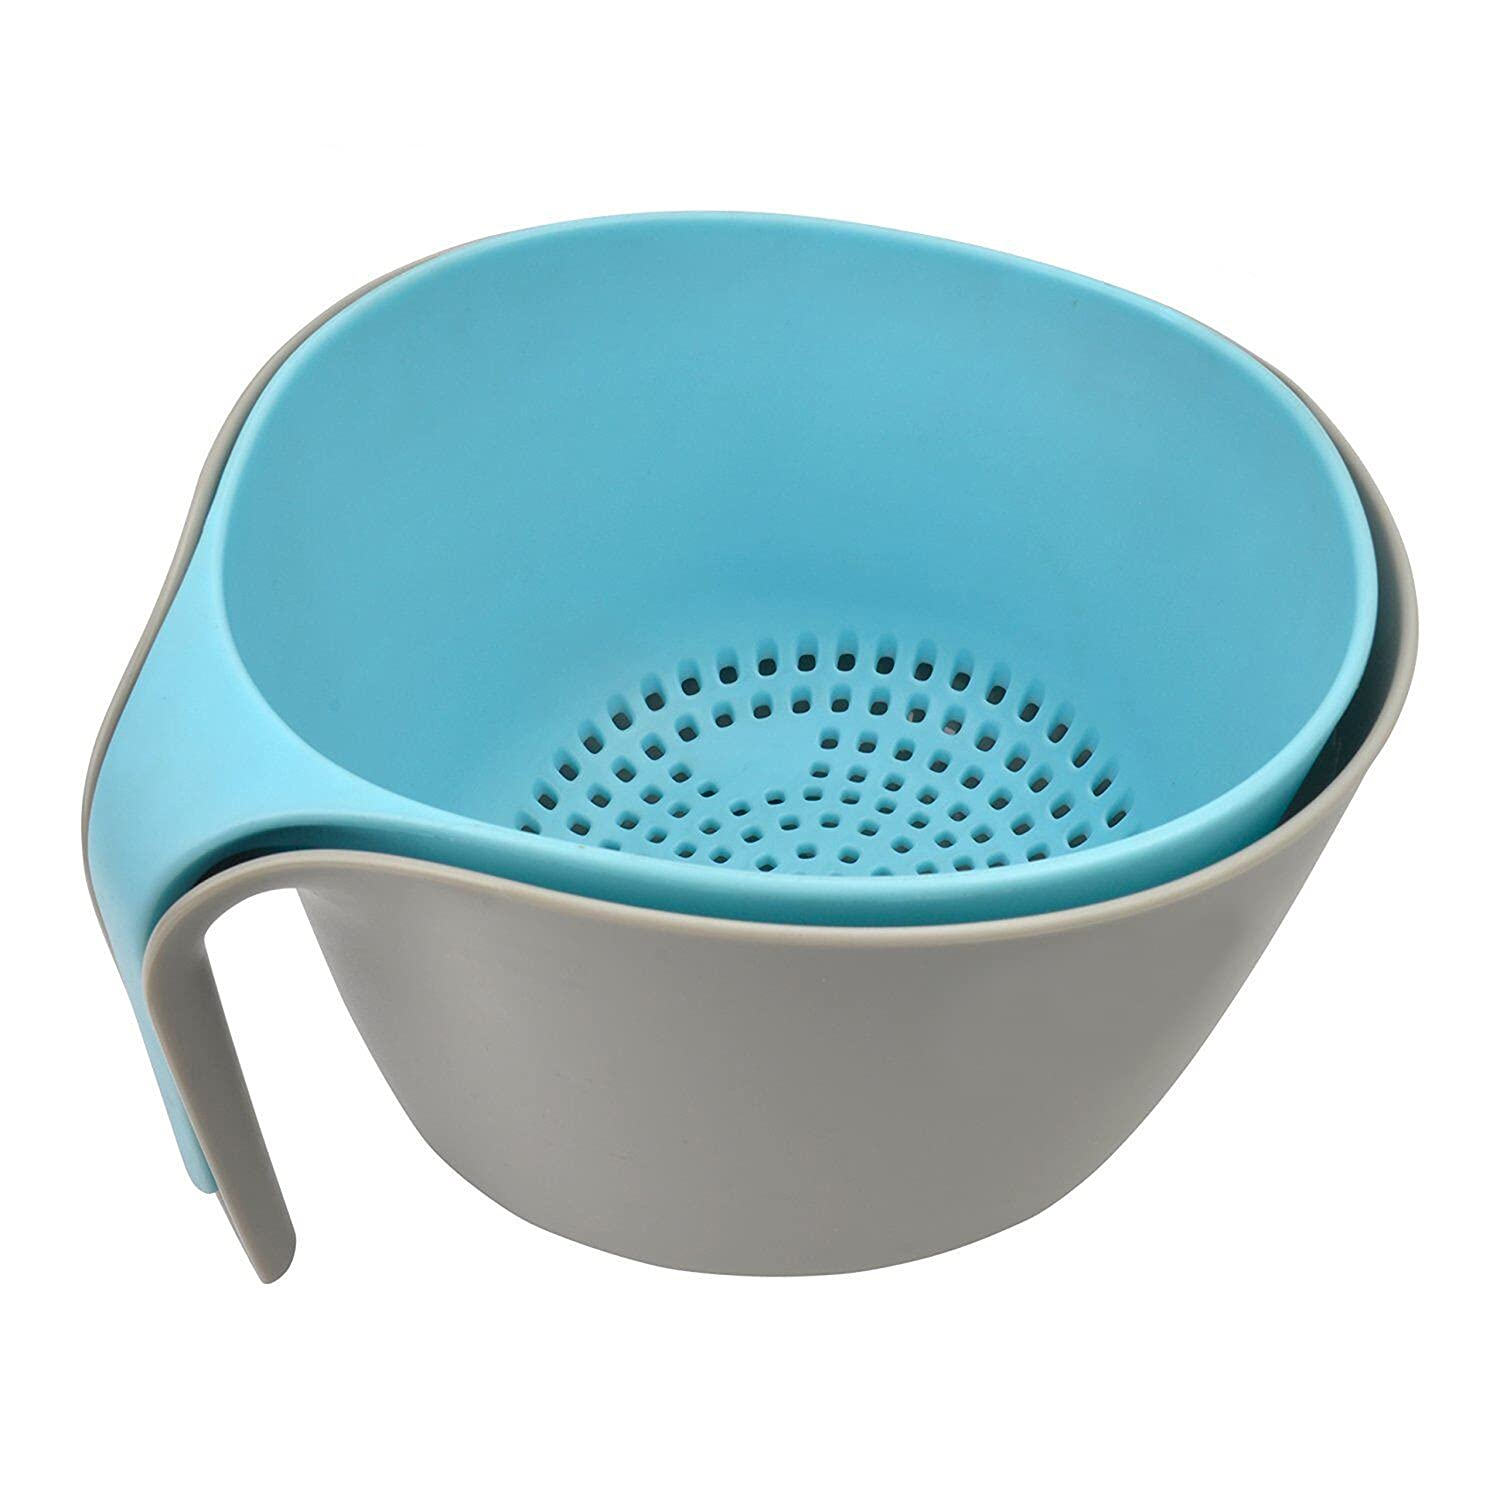 MEISHILOM 2-in-1 Large Nest Washing Colander Bowl Sets & Food Strainers with Long Good Grips for Washing Fruits Vegetable Beans Pasta-Non-Slip Base/Dishwasher-Safe/BPA Free (4.5 Quart)